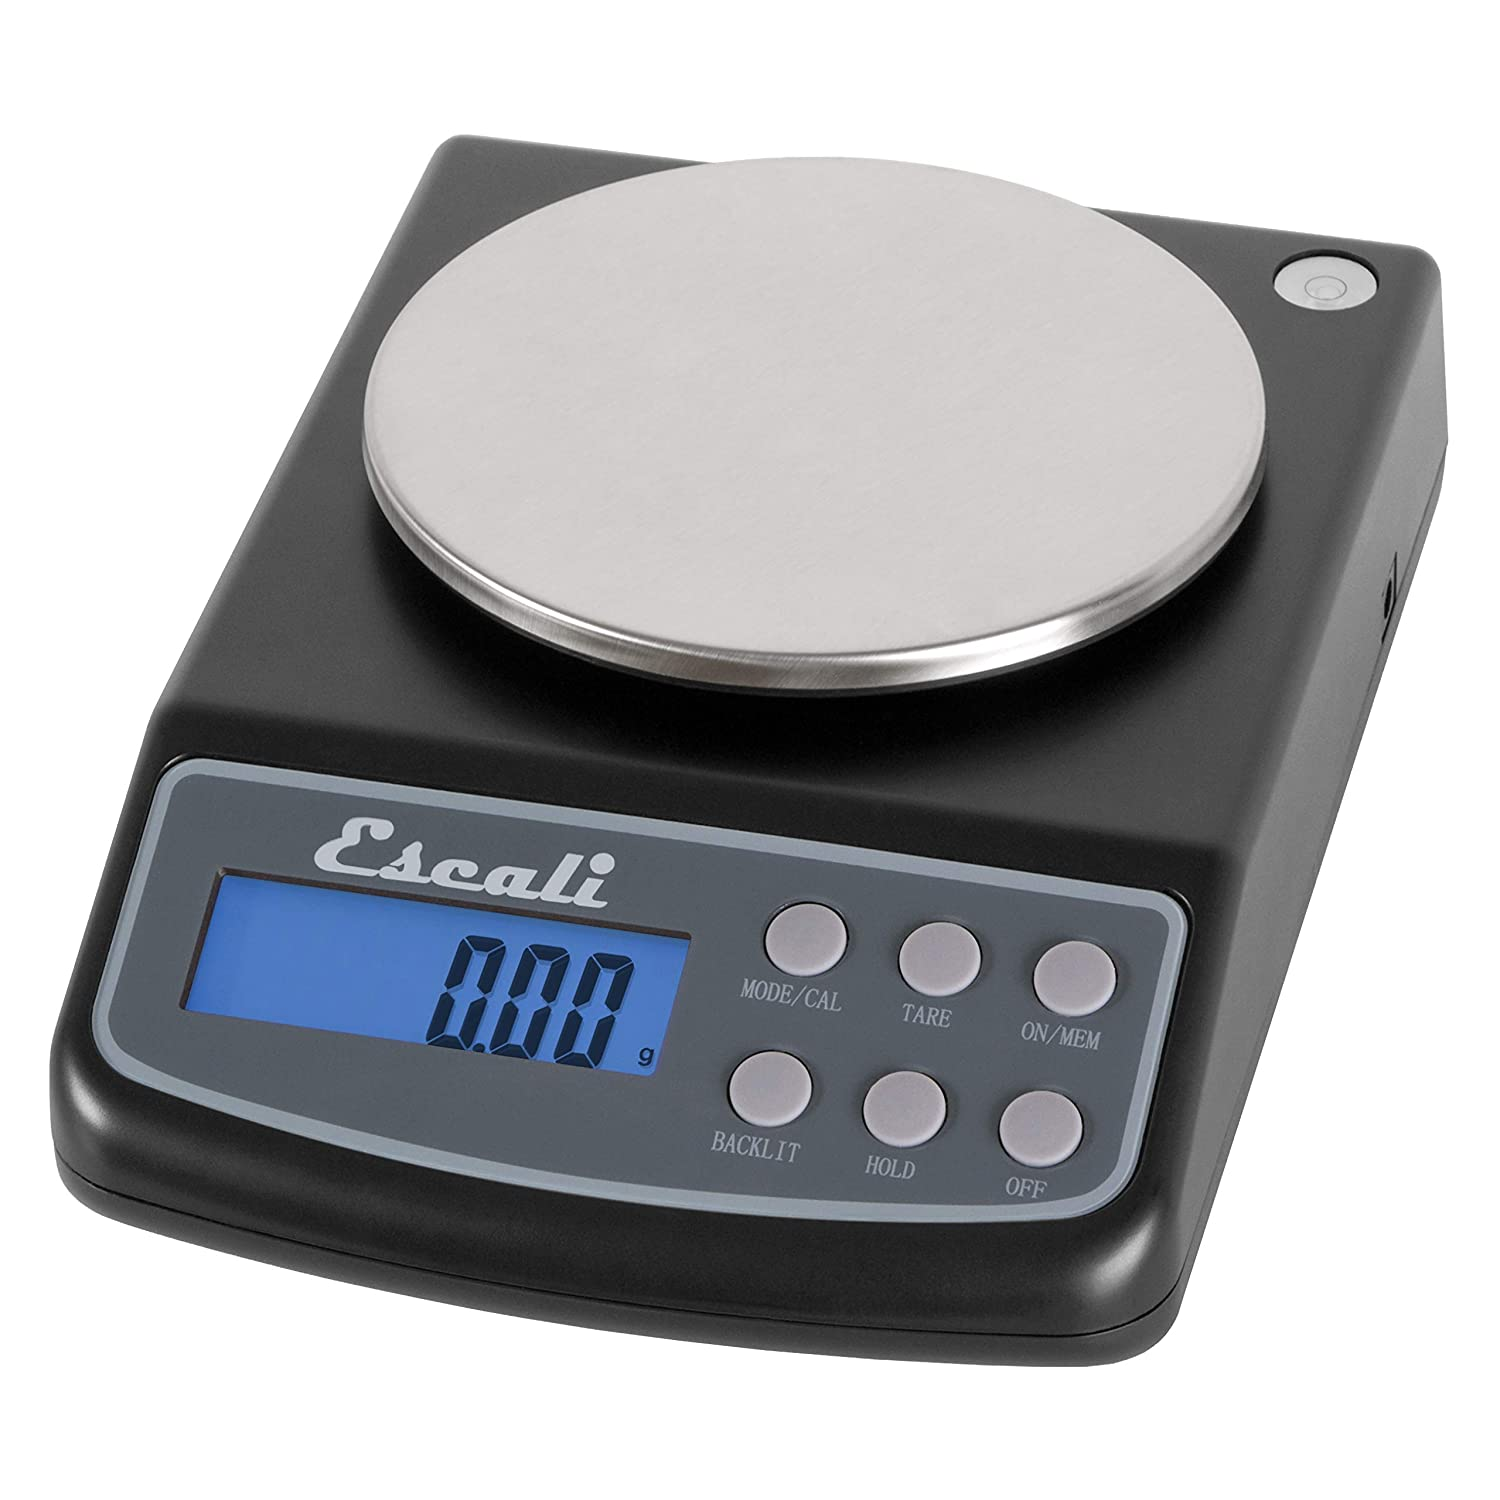 Escali L125 L-Series High Precision Professional Lab Scale, Six Units of Measurements, Capacity 125 gram / Resolution 0.01 gram, Tare Feature, LCD Digital Display,Black